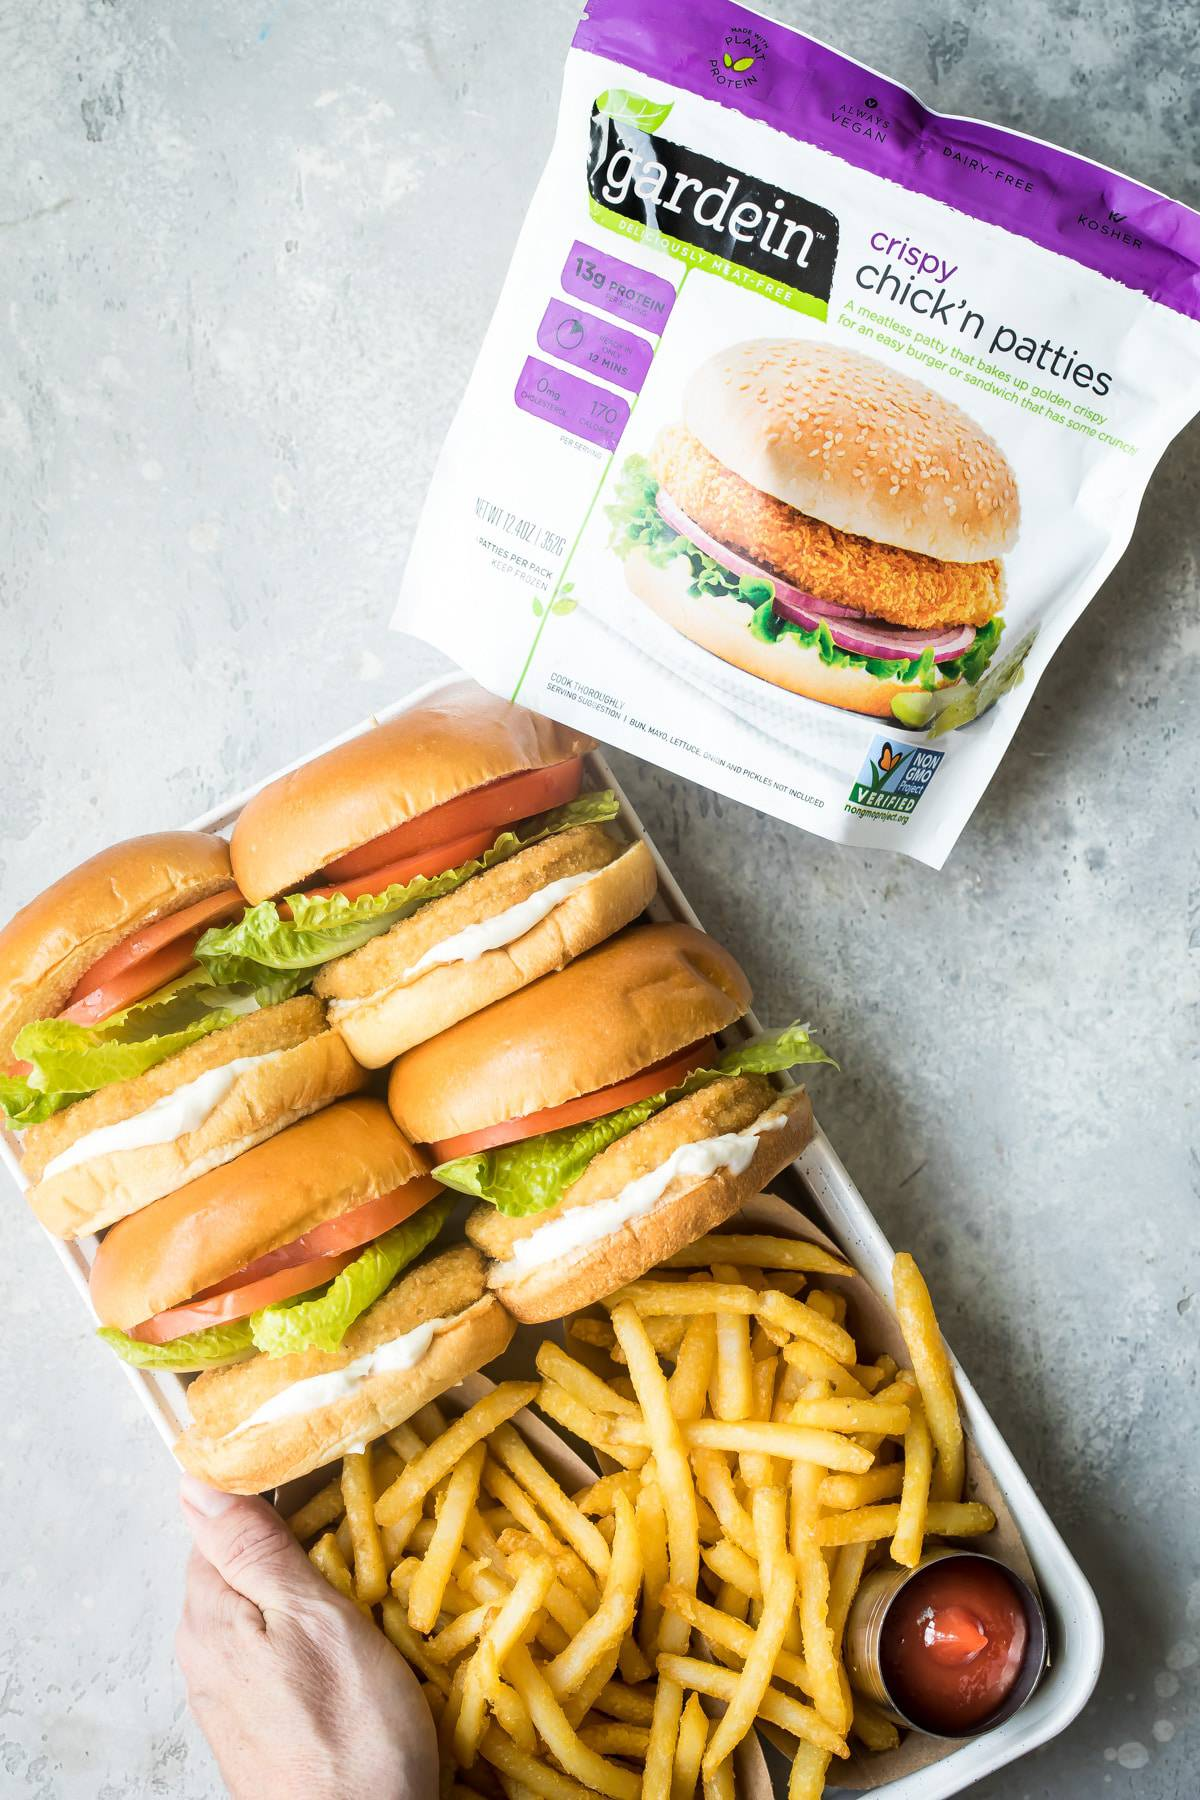 meatless chicken sandwich with french fries